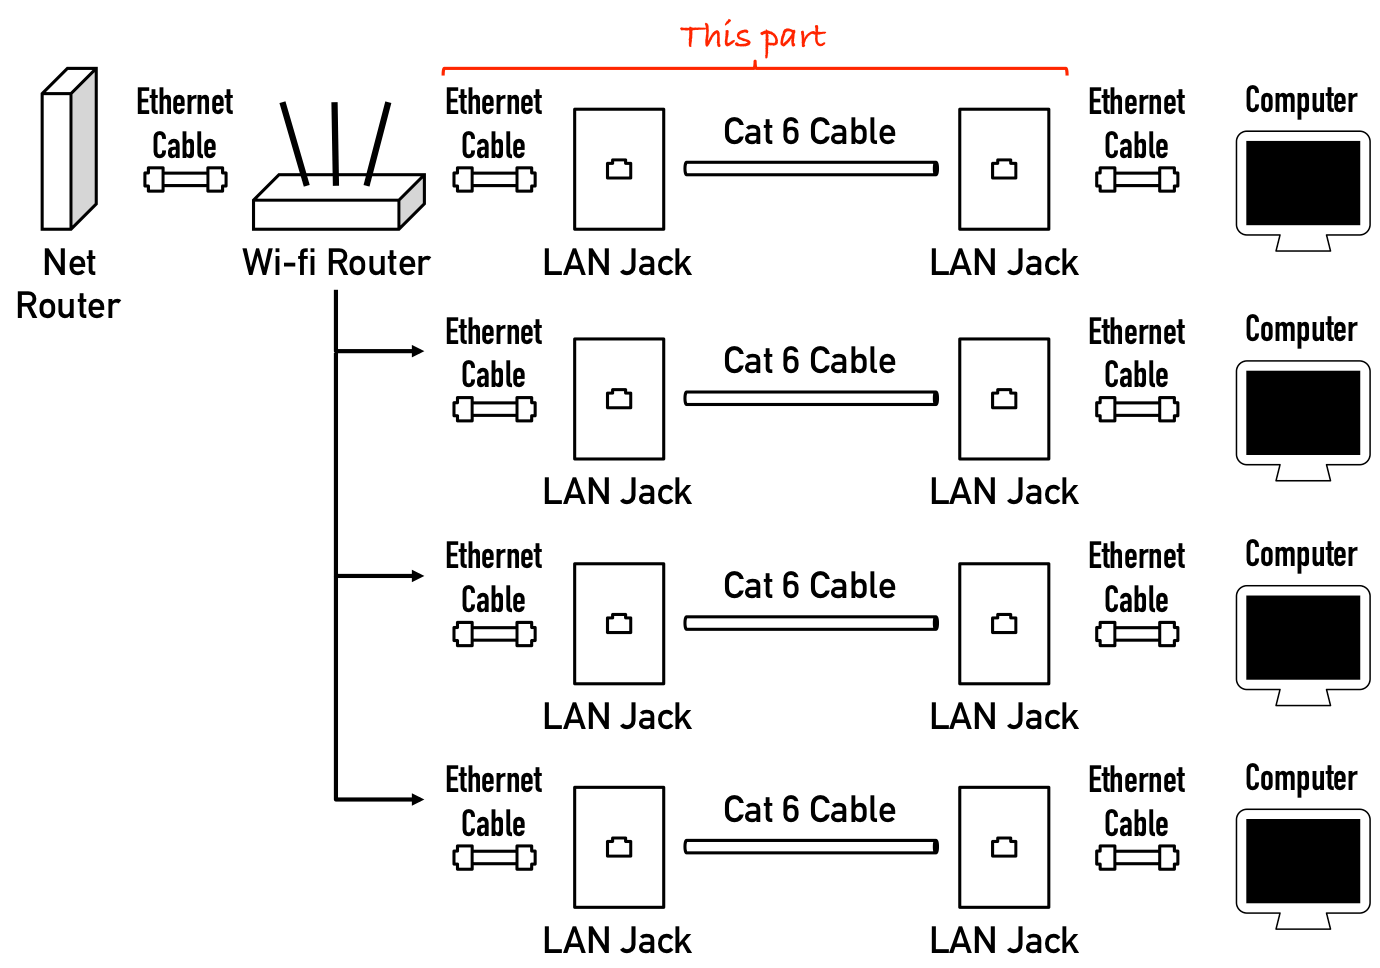 hight resolution of cabling how do i run wired internet from a single router to home structured wiring systems wiring a house for cable and internet